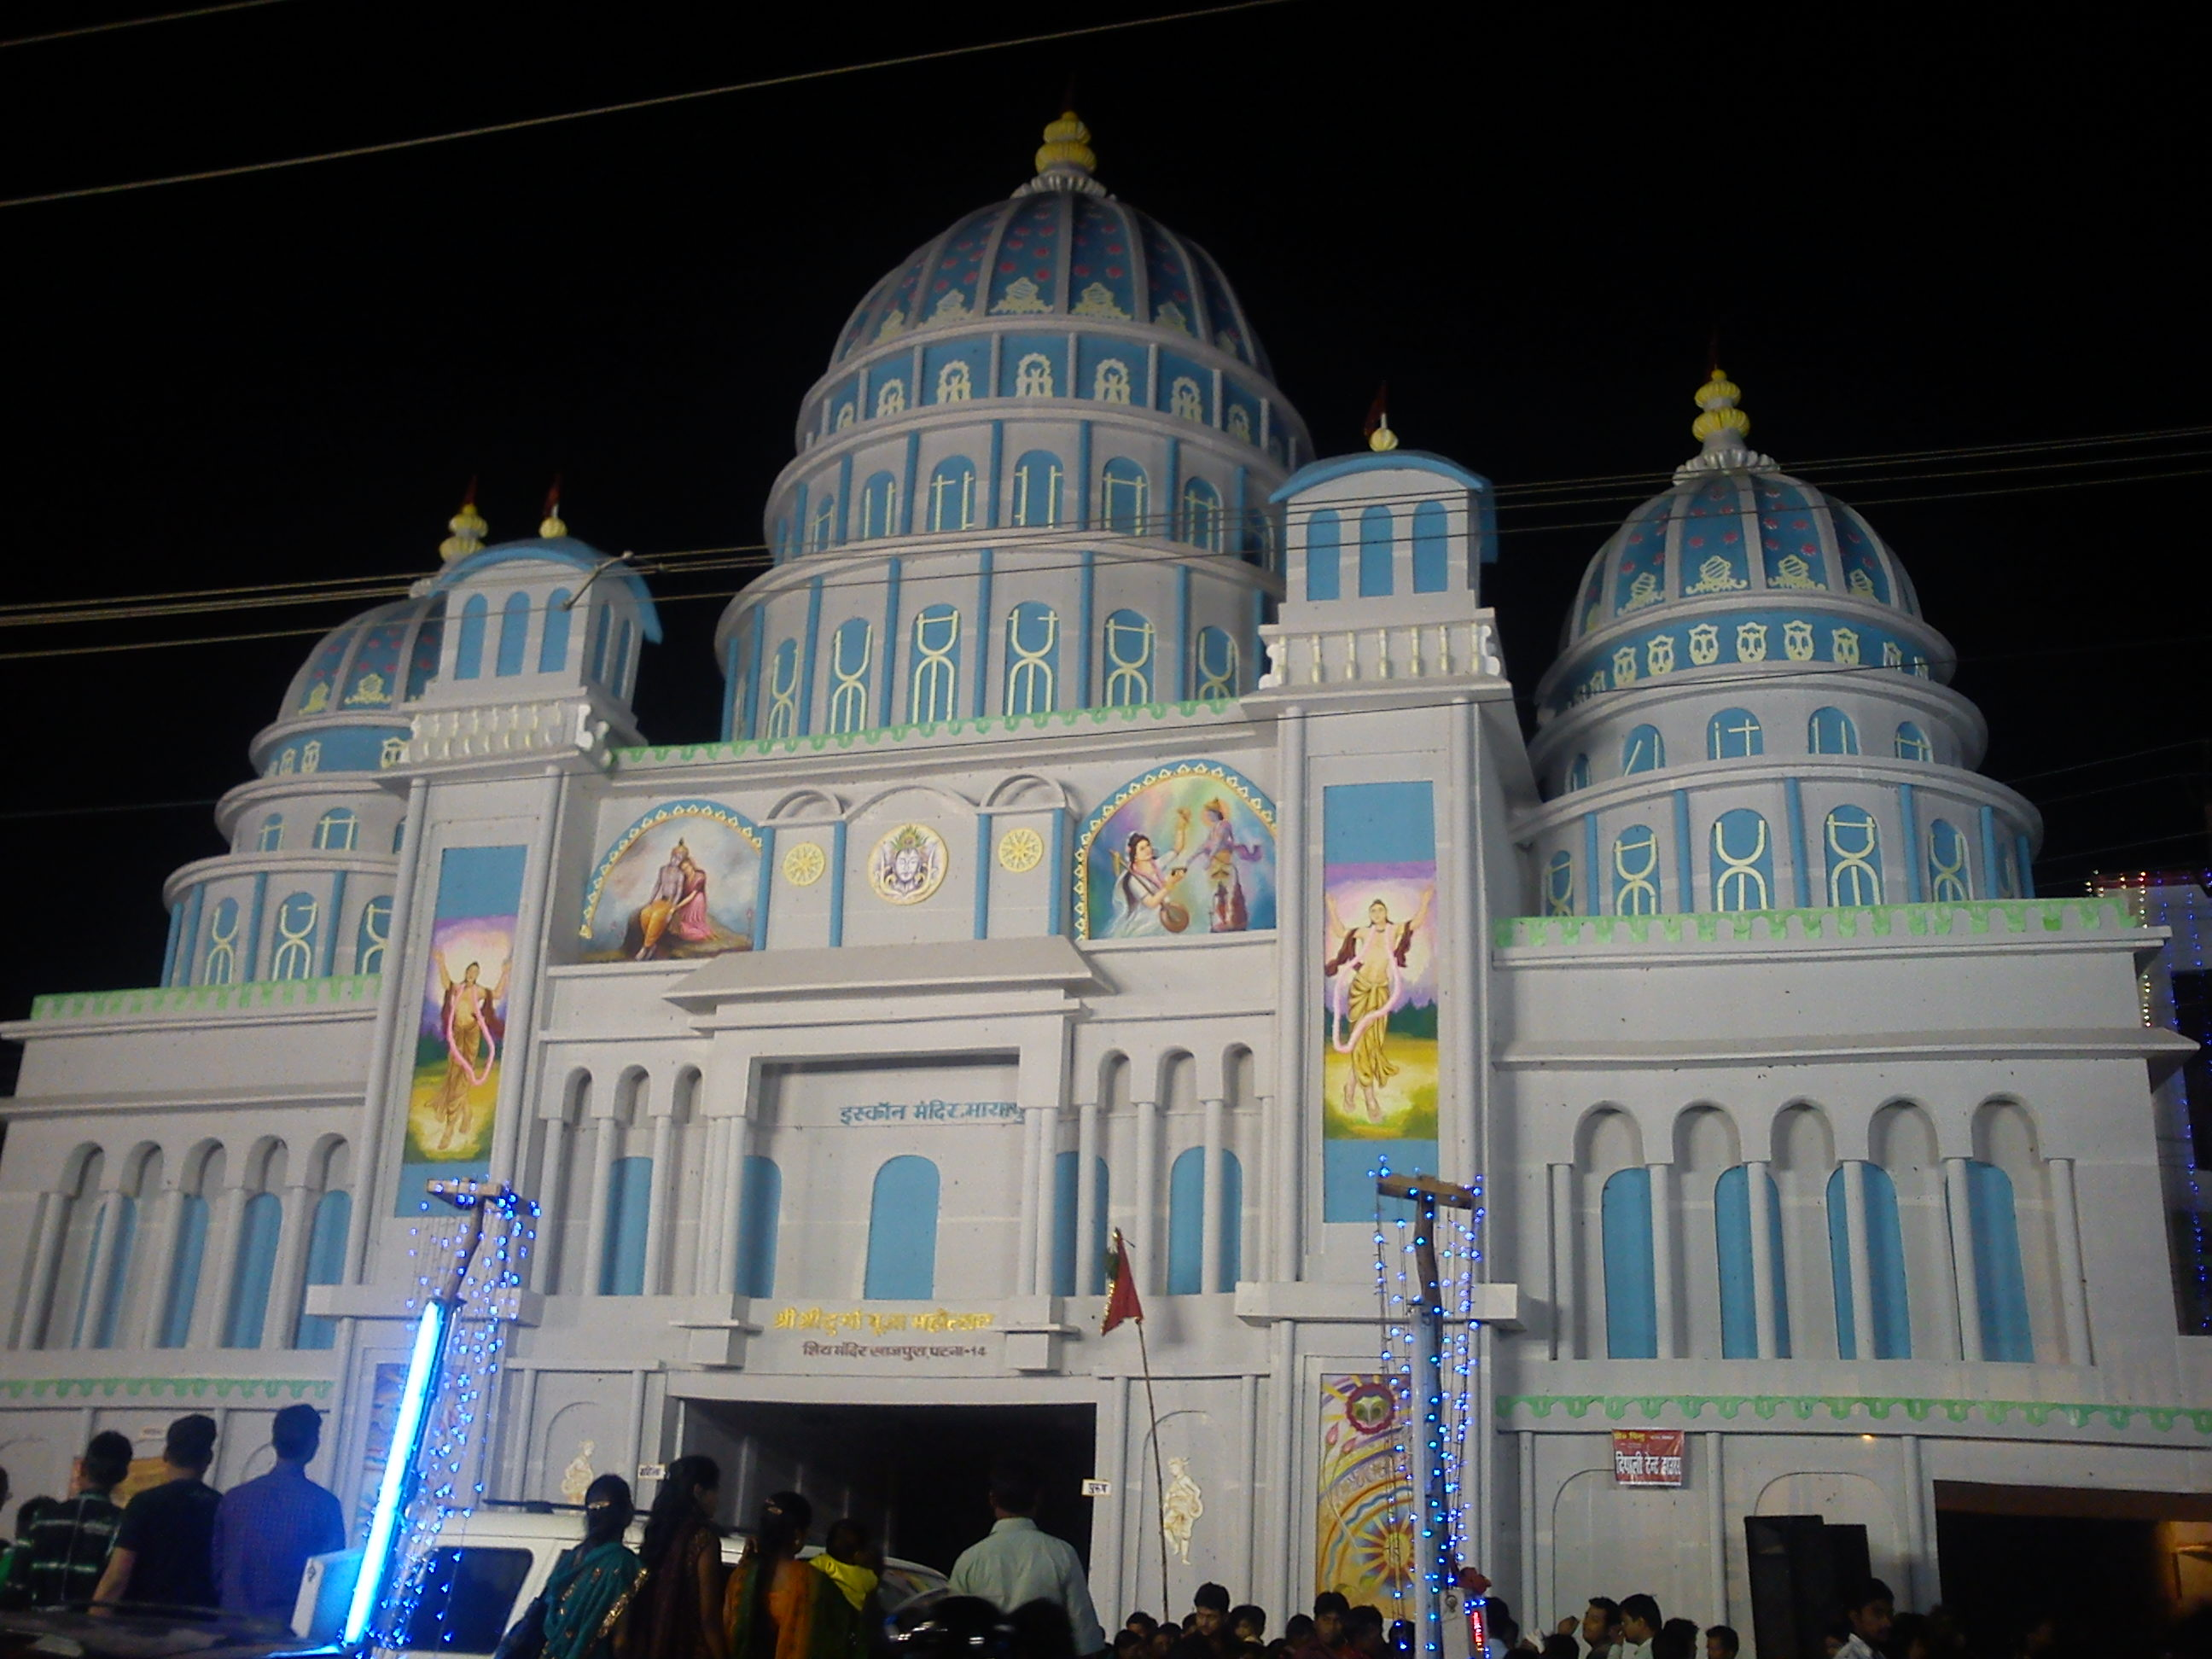 Filea durga puja pandal at patna biharg wikimedia commons filea durga puja pandal at patna biharg thecheapjerseys Images